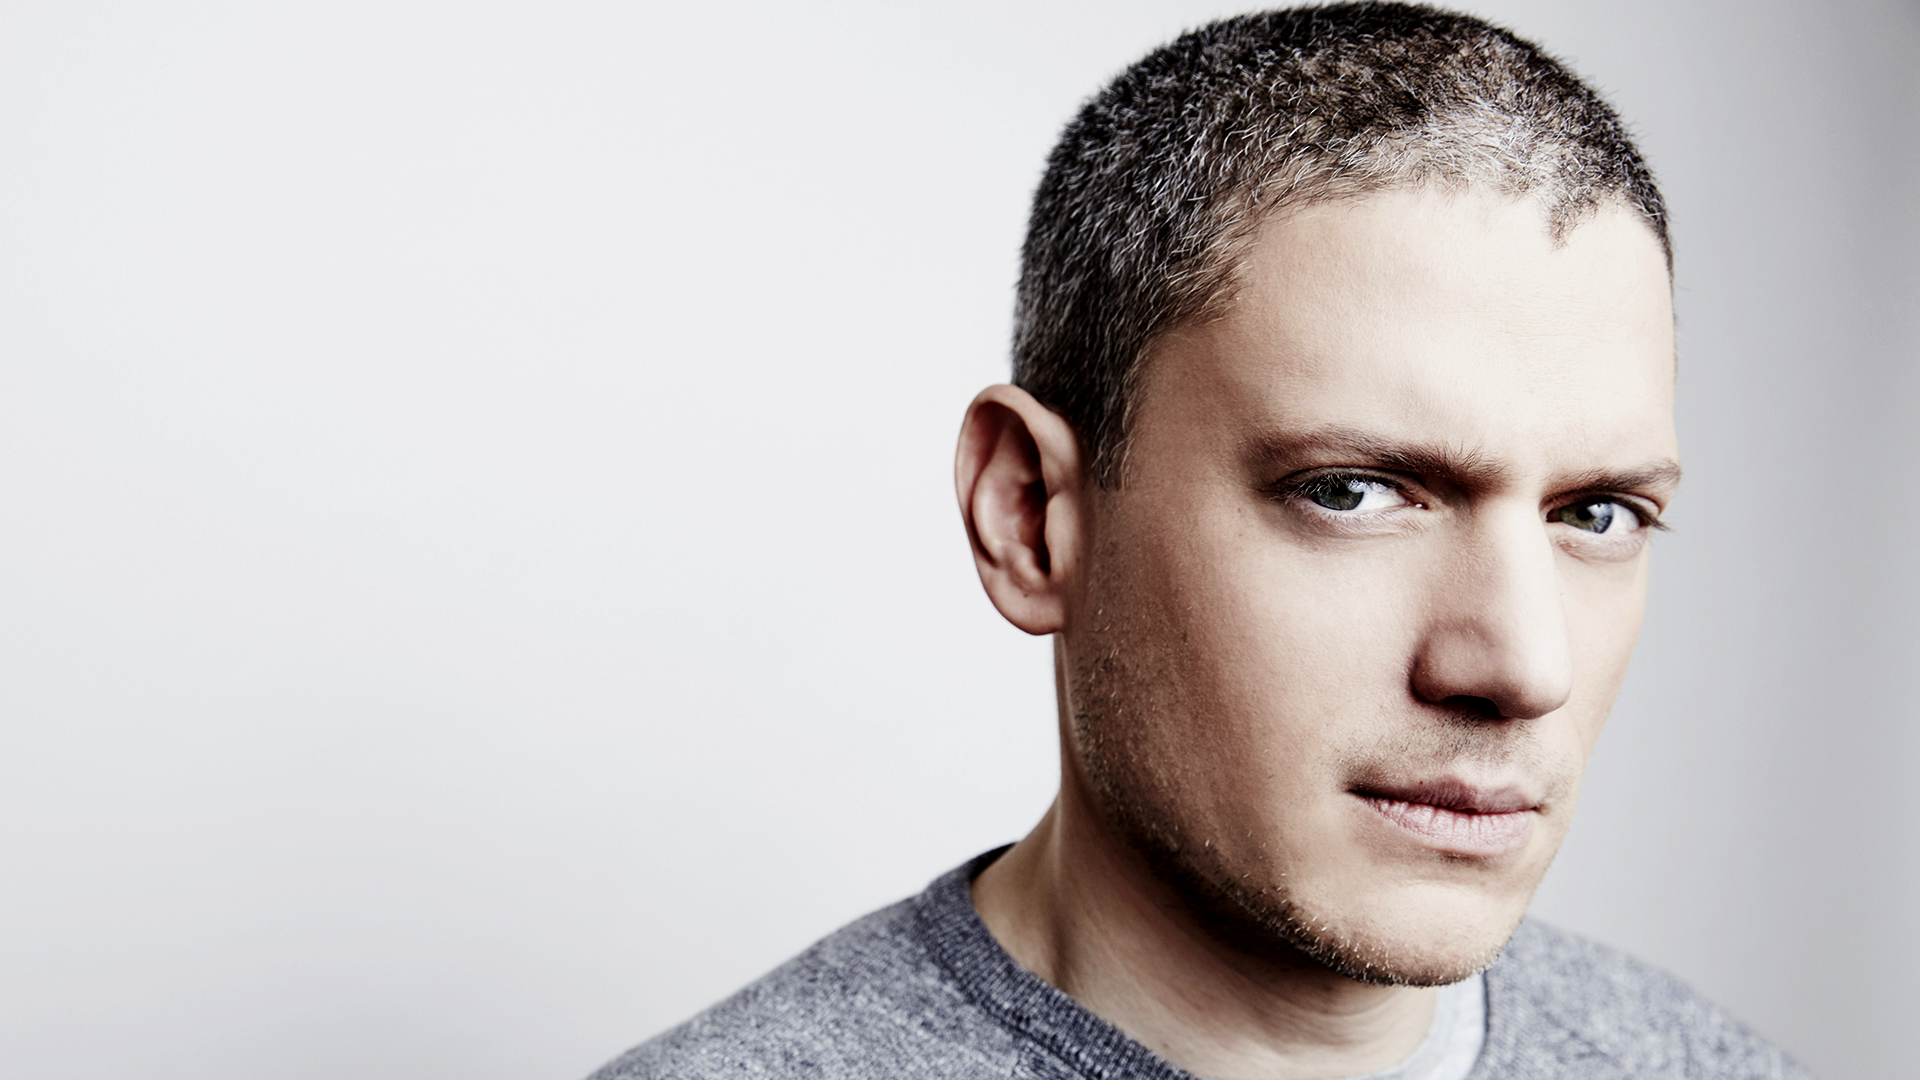 wentworth miller twitterwentworth miller 2019, wentworth miller imdb, wentworth miller instagram, wentworth miller wife, wentworth miller жена, wentworth miller wiki, wentworth miller parents, wentworth miller net worth, wentworth miller биография, wentworth miller height, wentworth miller фильмография, wentworth miller twitter, wentworth miller films, wentworth miller father, wentworth miller boyfriends, wentworth miller legends of tomorrow, wentworth miller interview, wentworth miller фильмы, wentworth miller vk, wentworth miller and luke macfarlane